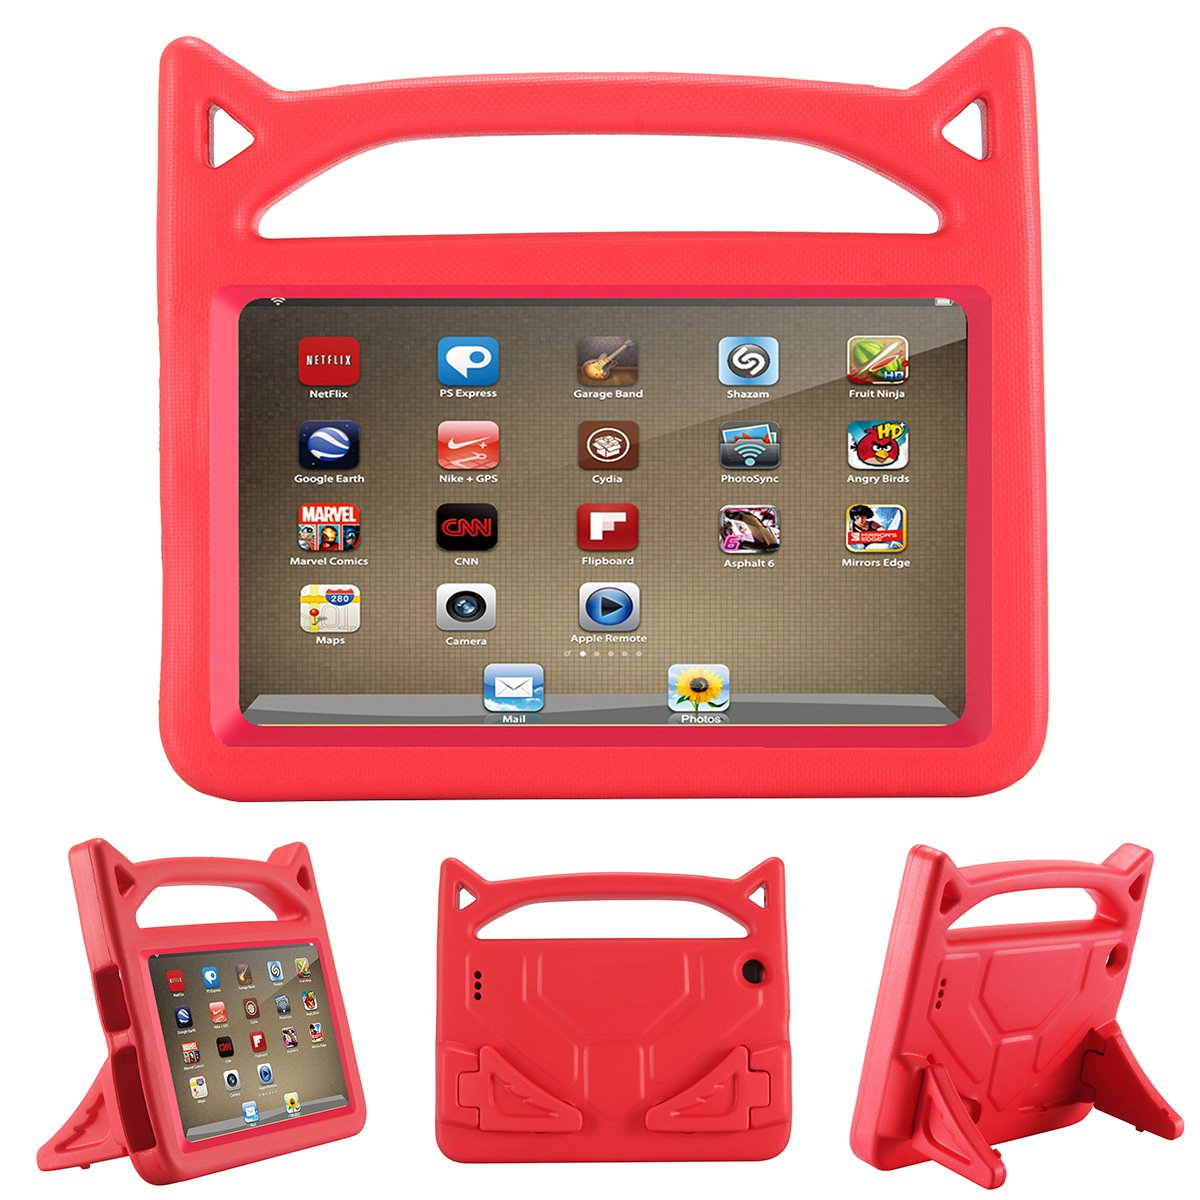 All-New Fire 7 2017 Case, Riaour Kids Shock Proof Protective Cover Case for Amazon Fire 7 Tablet (Compatible with 5th Generation 2015/7th Generation 2017) (Rose) Fire 7 7th Generation Kindle Fire 7 2017 7th Gen 4336301330